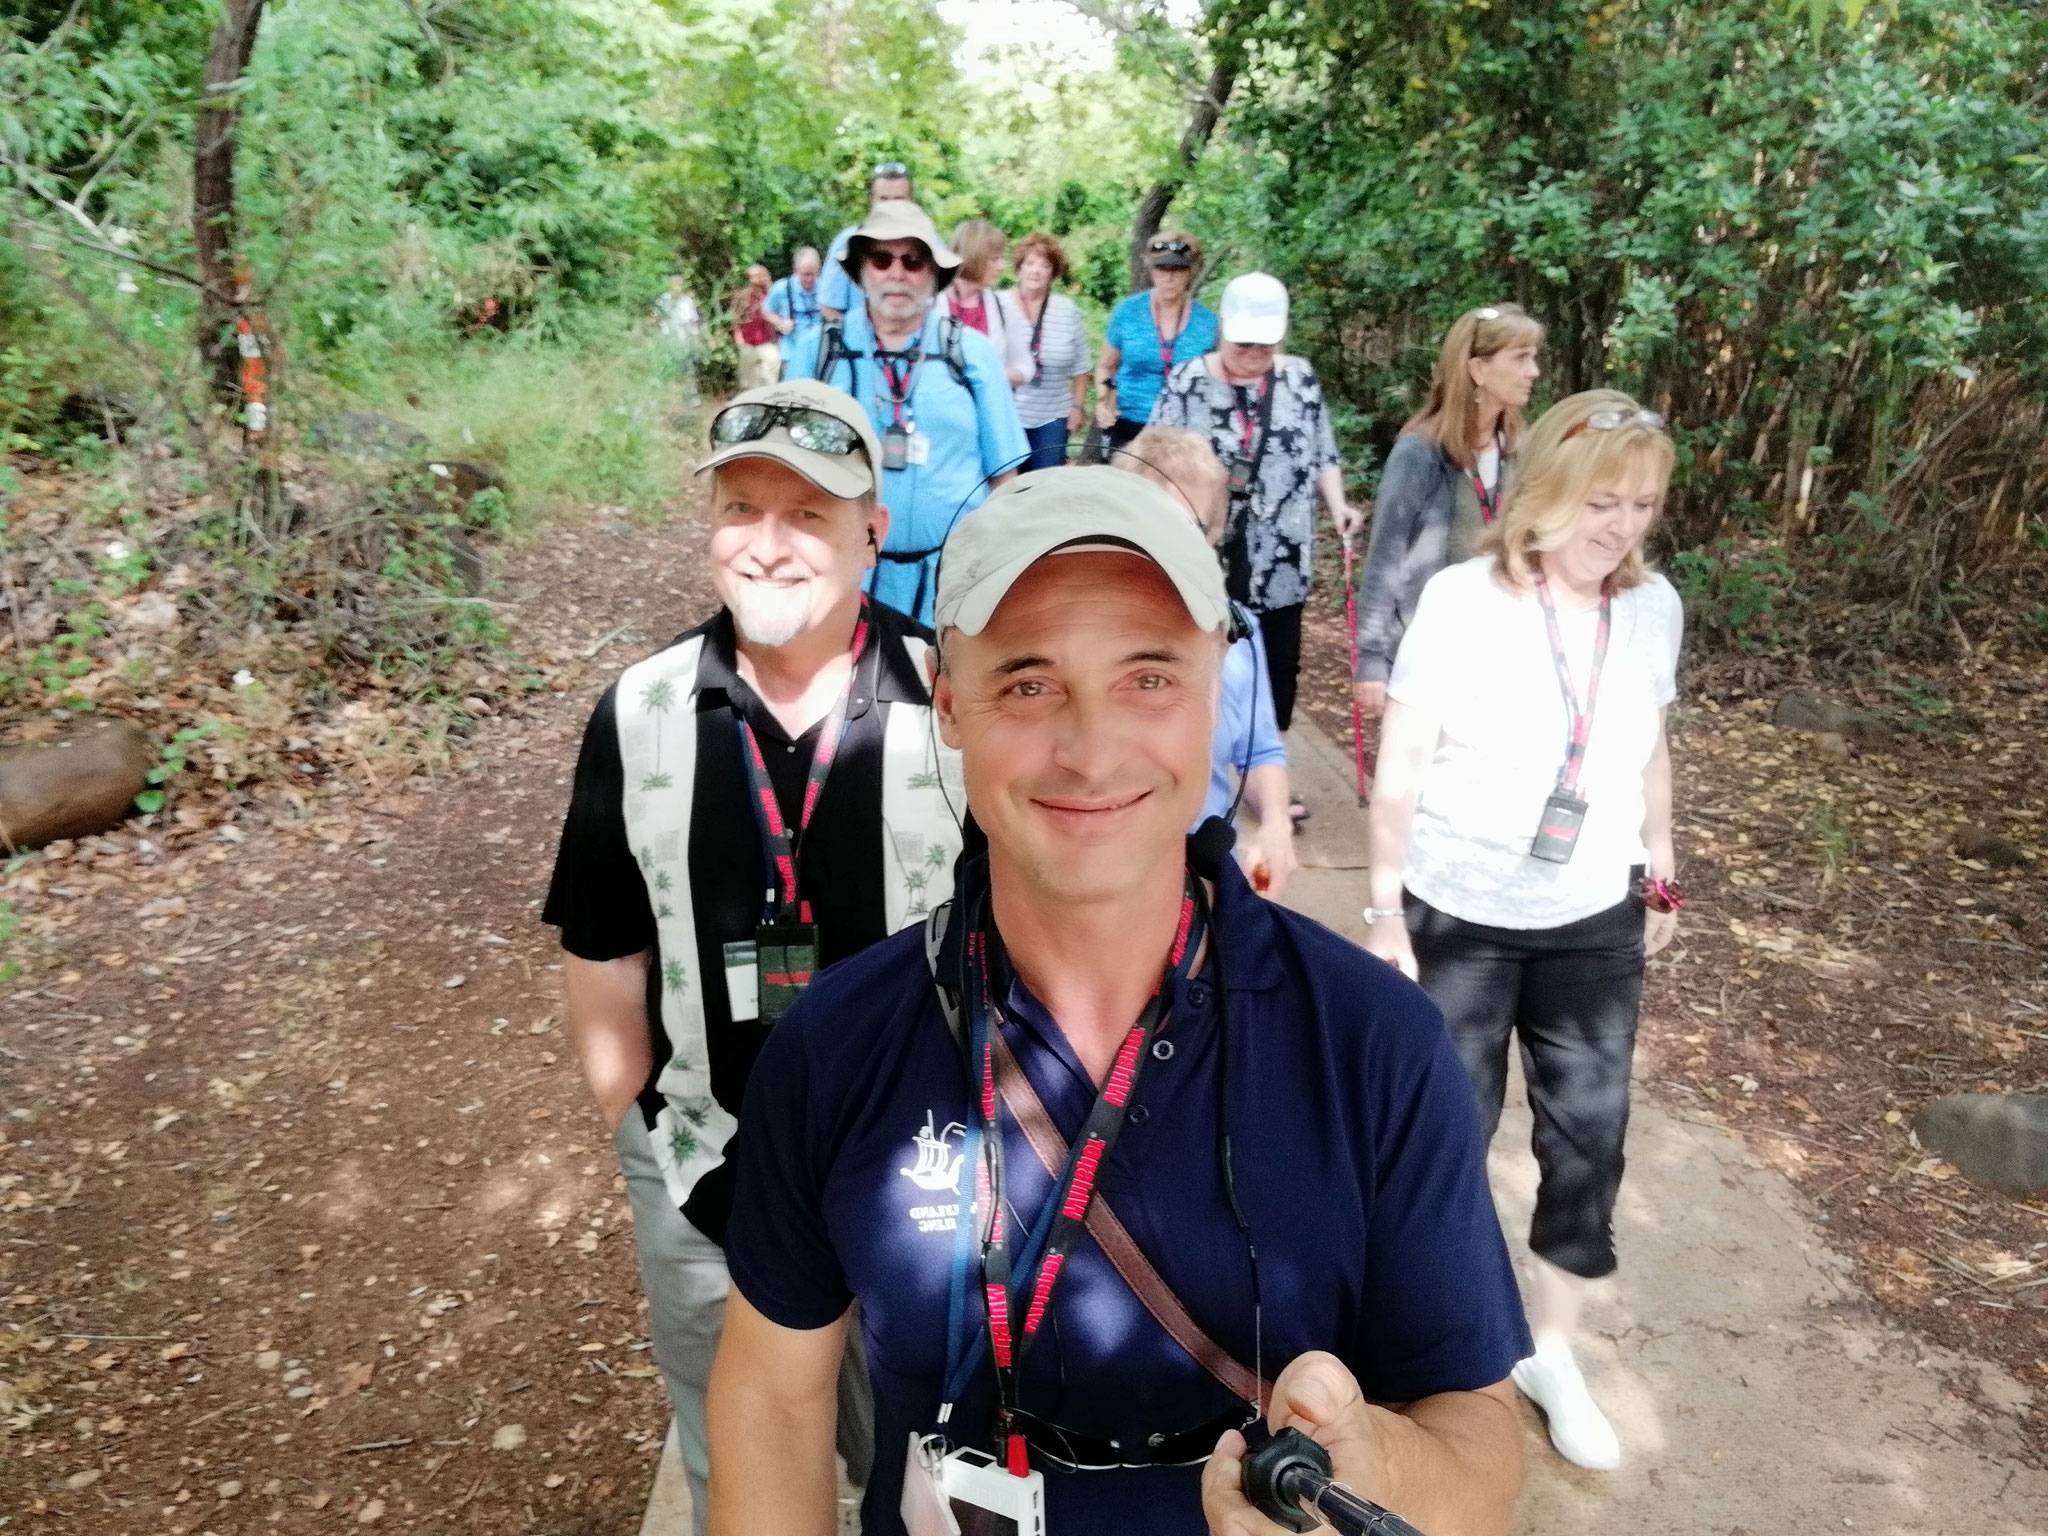 On the path with the group from Texas, 2018